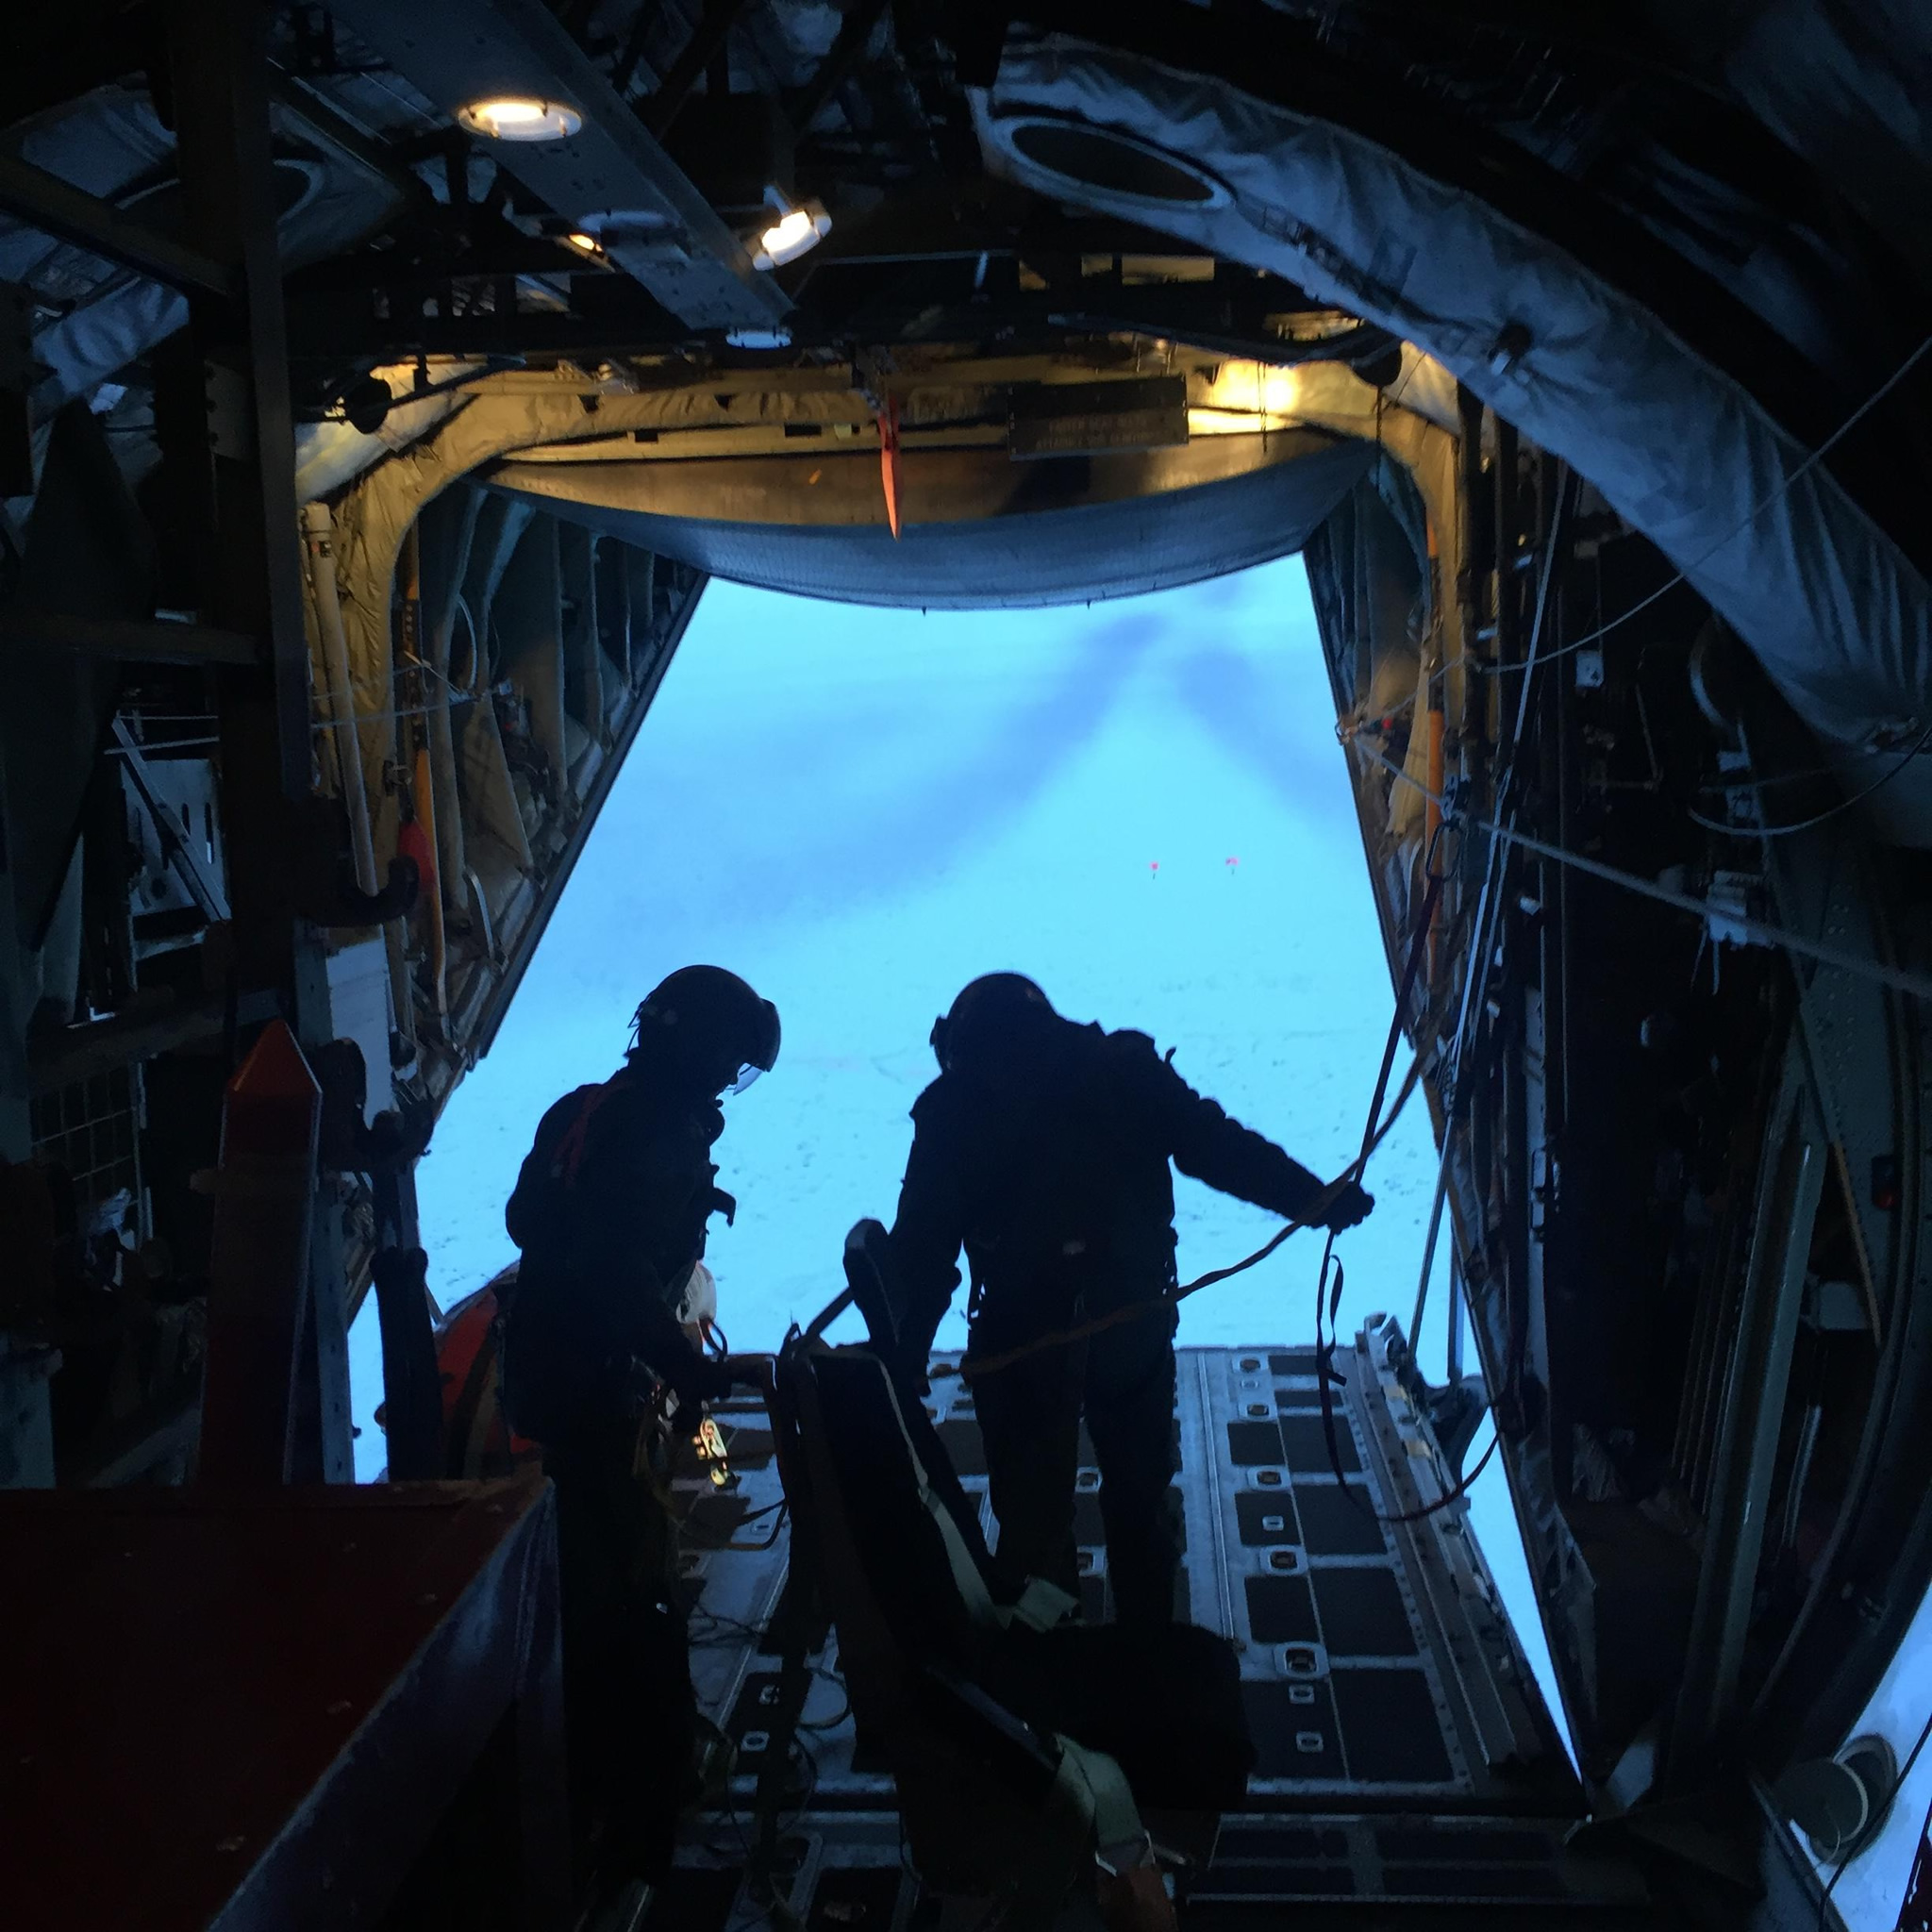 Two soldiers hold onto to lines and deployment bags on board an aircraft after two other soldiers exited the aircraft.